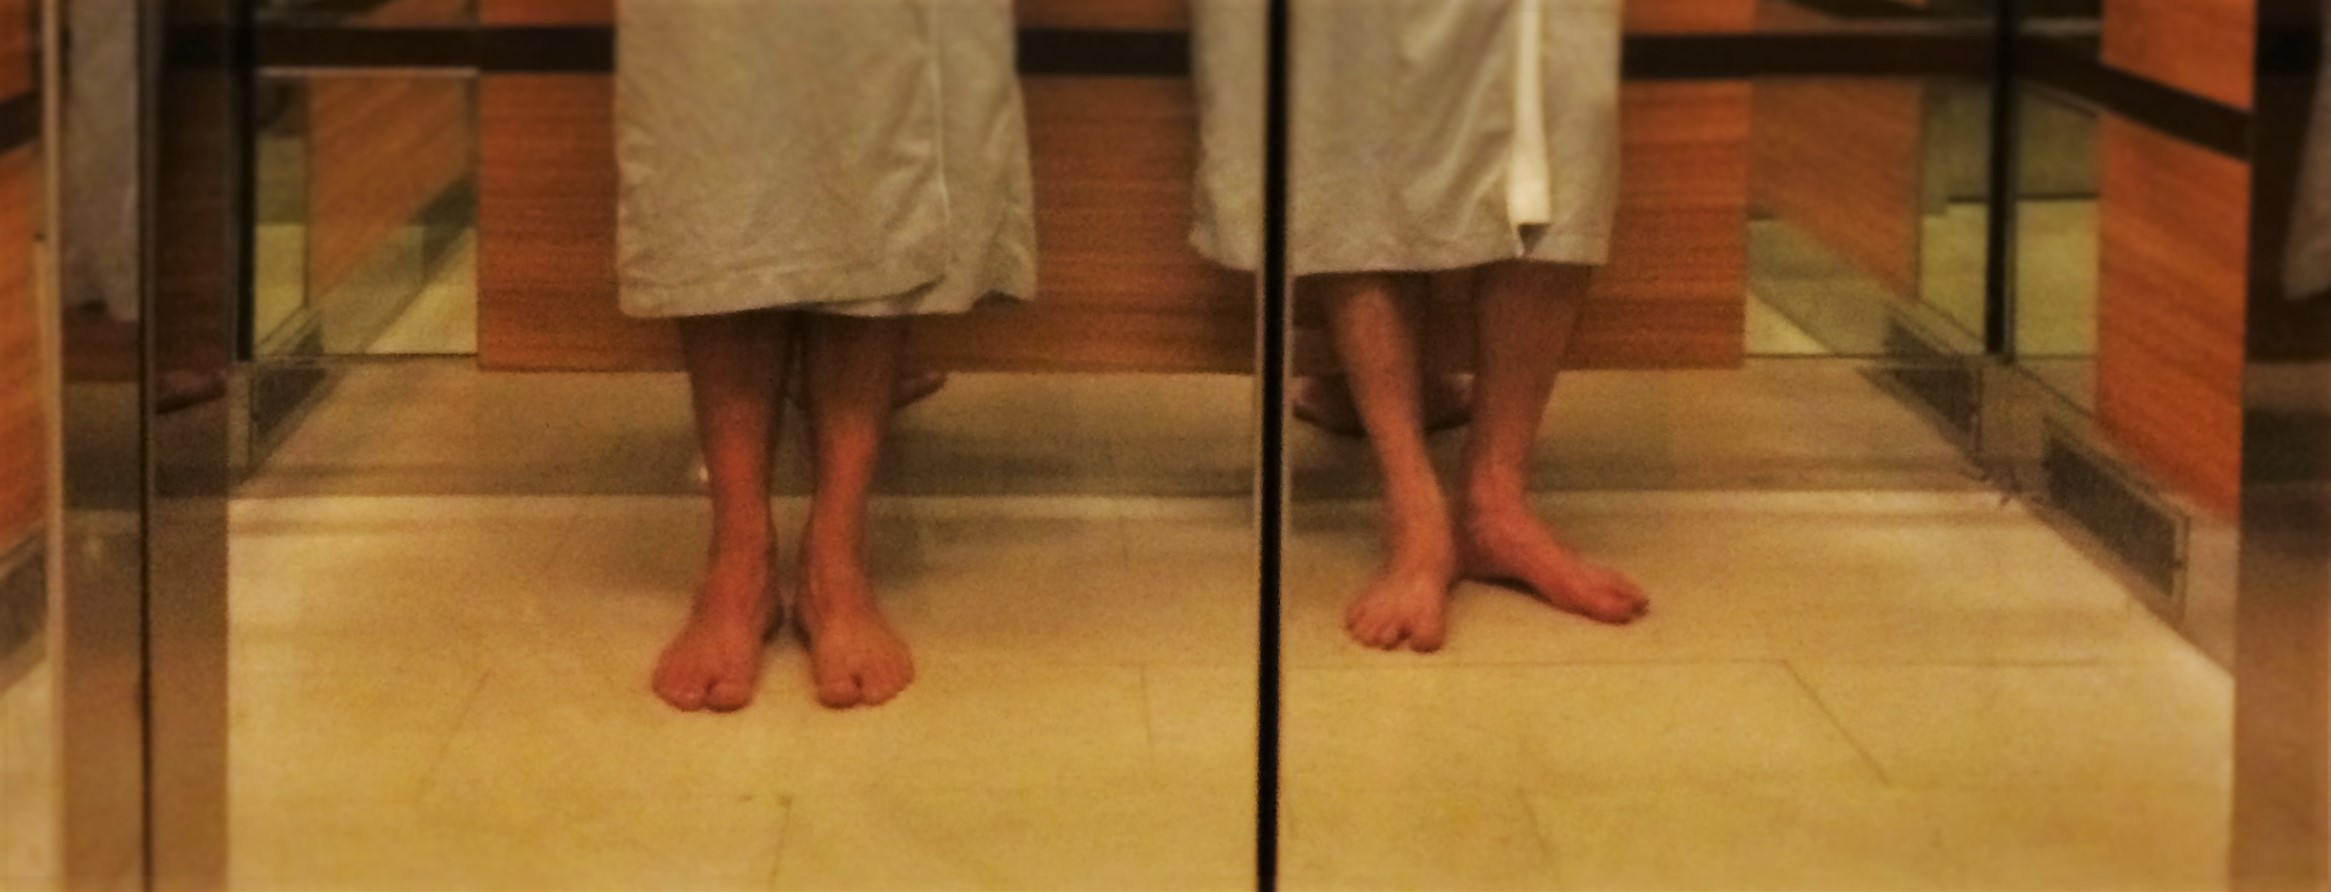 Feet in Elevator at Hyatt Olive 8 Seattle header